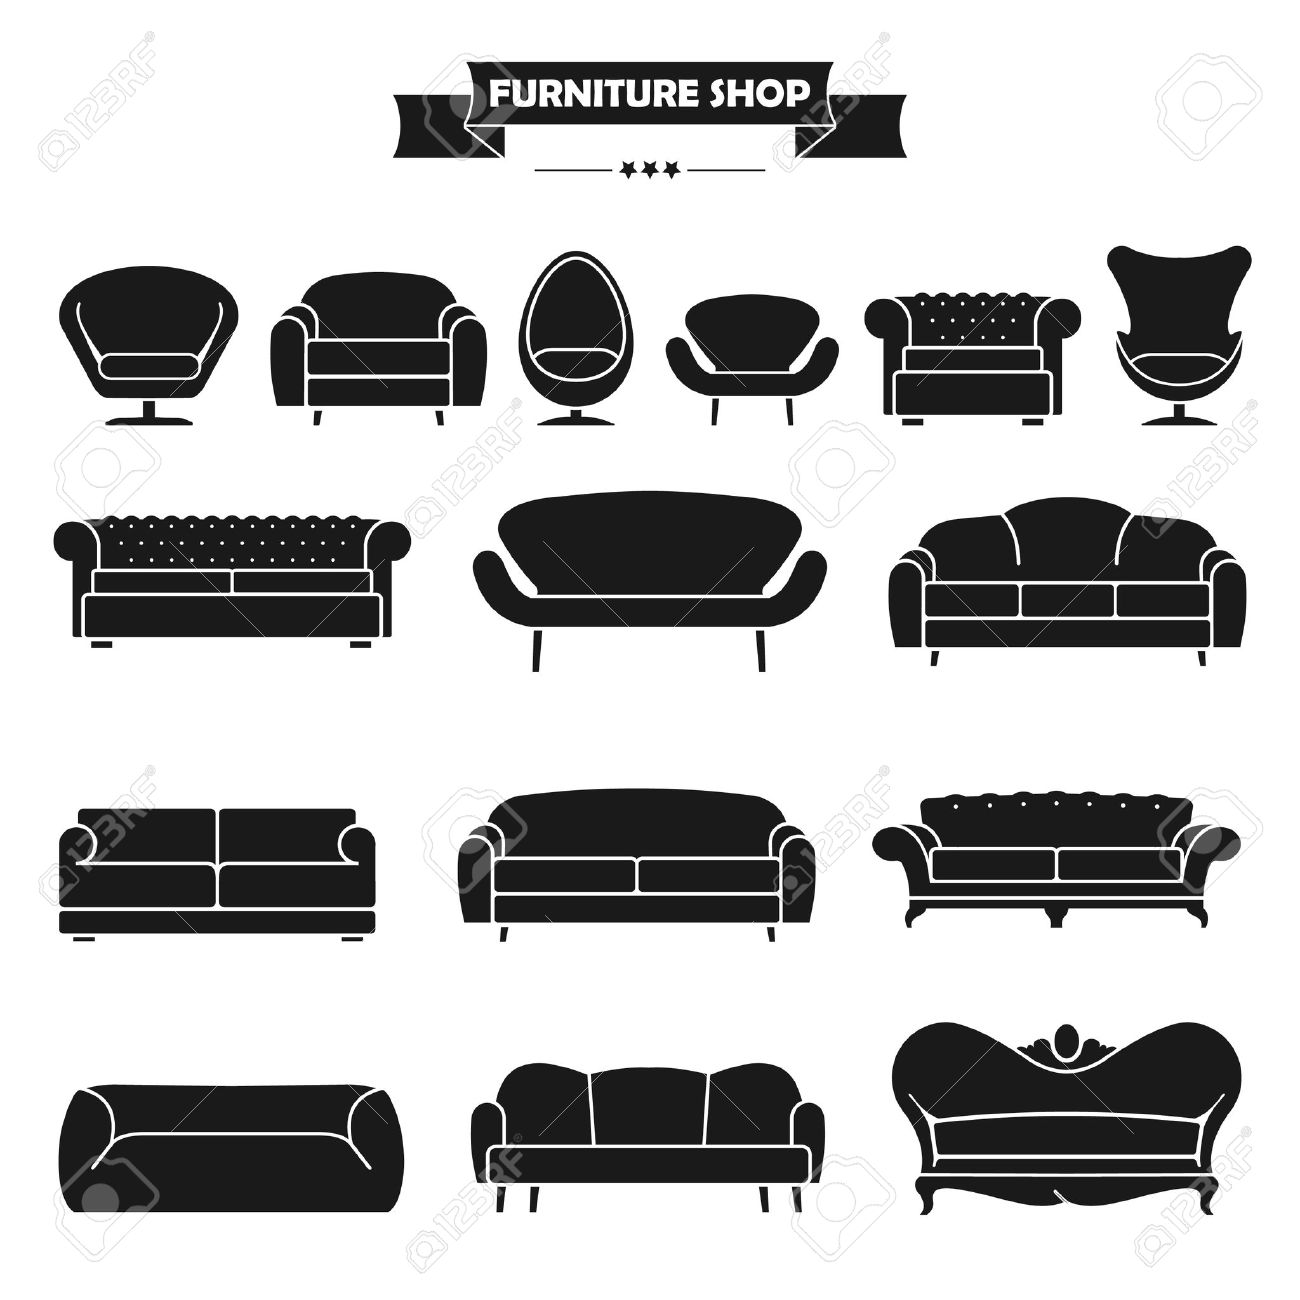 Luxury Modern Sofa And Couch Icons Set. Vintage Furniture Collection. Stock  Vector   41641641